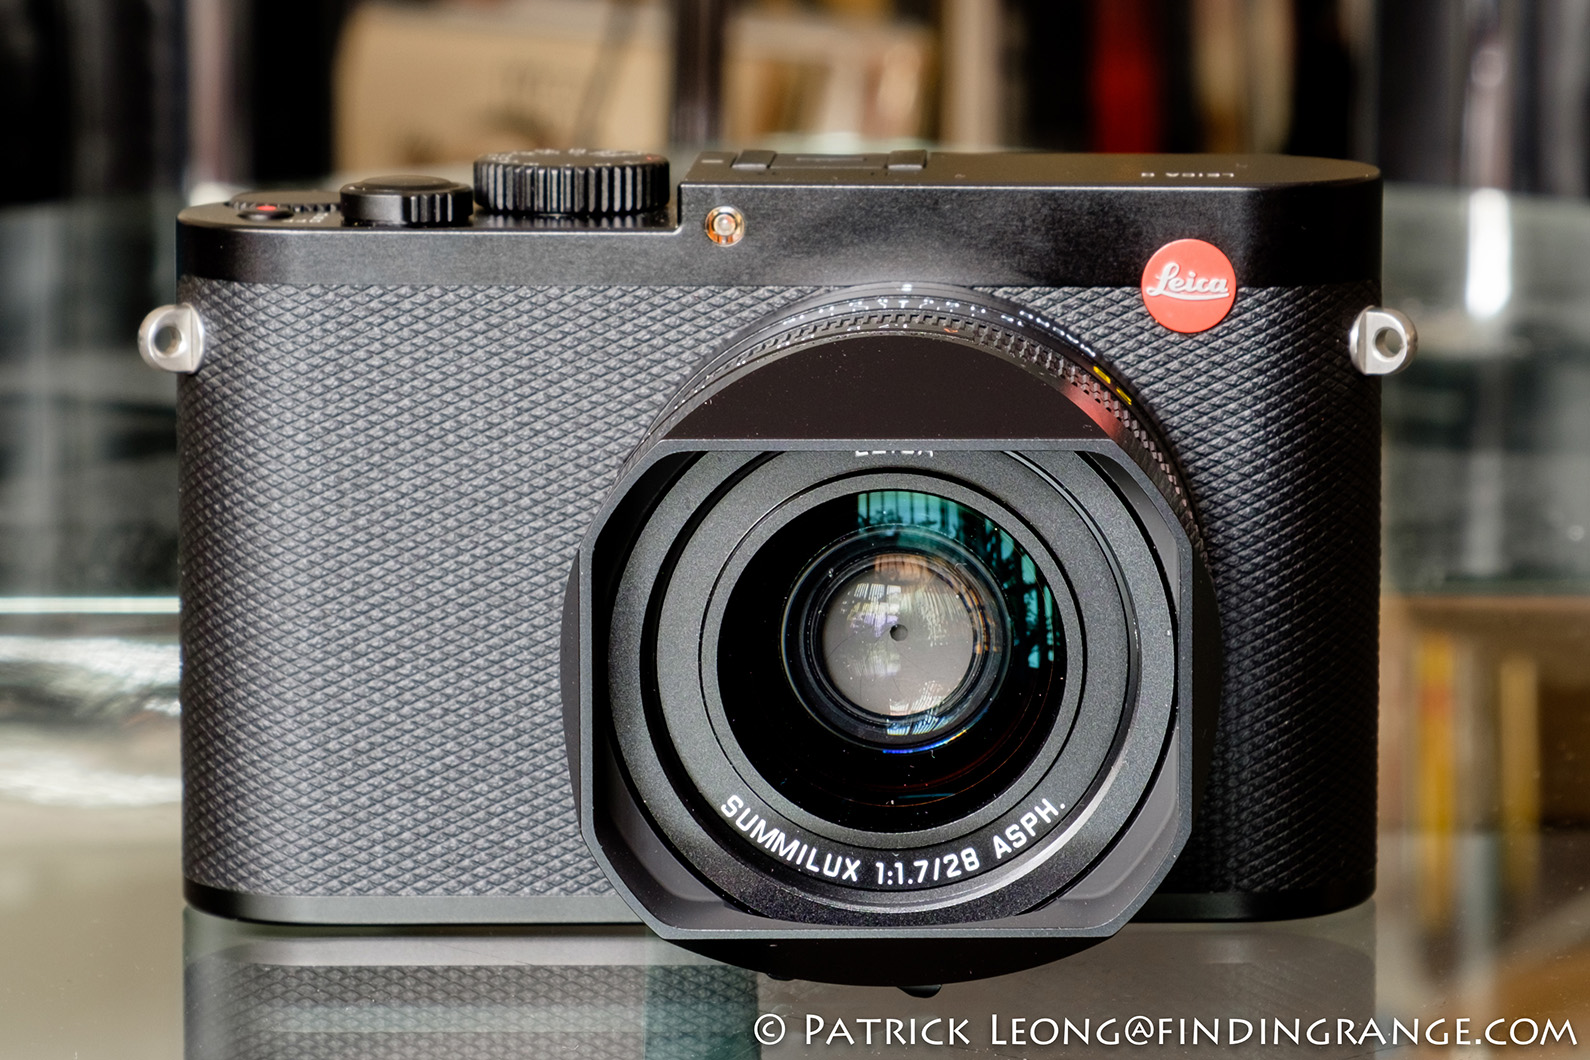 Leica Q Typ 116 Review: An Innovative Full Frame Compact